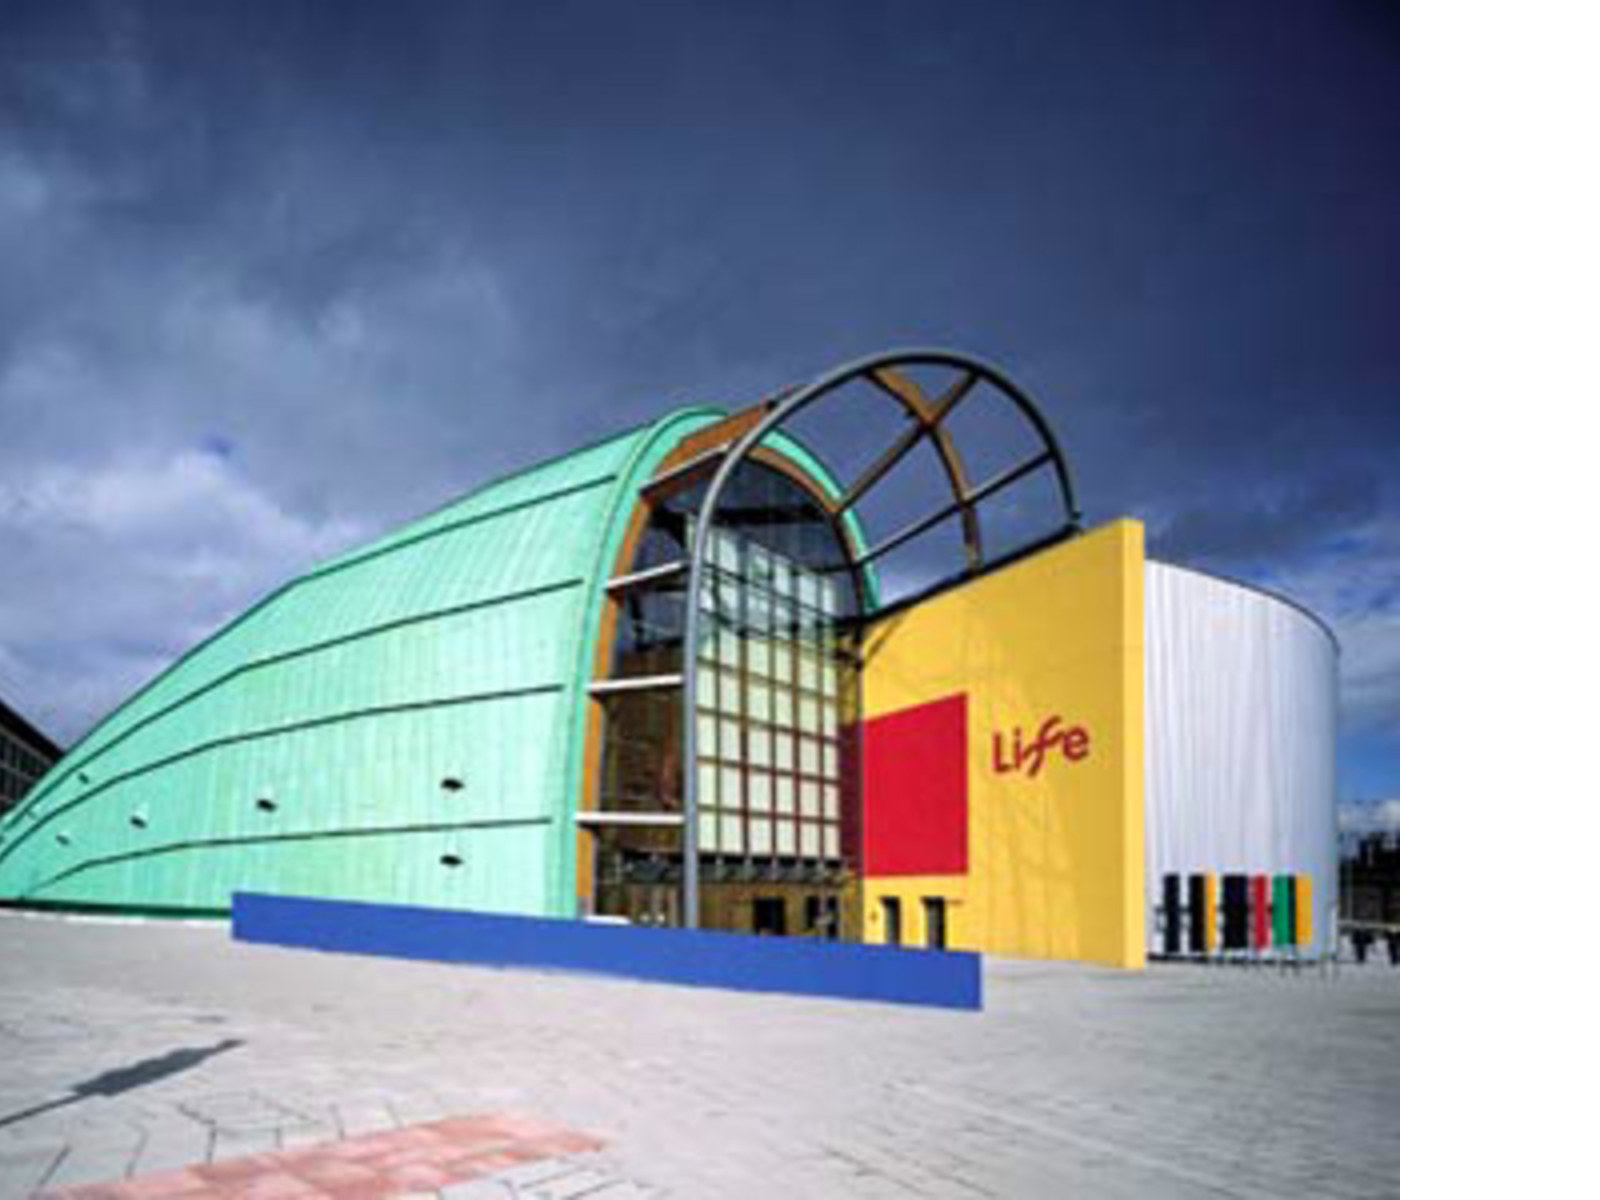 Terry Farrell<br> International Centre for Life, Great Britain, 1996